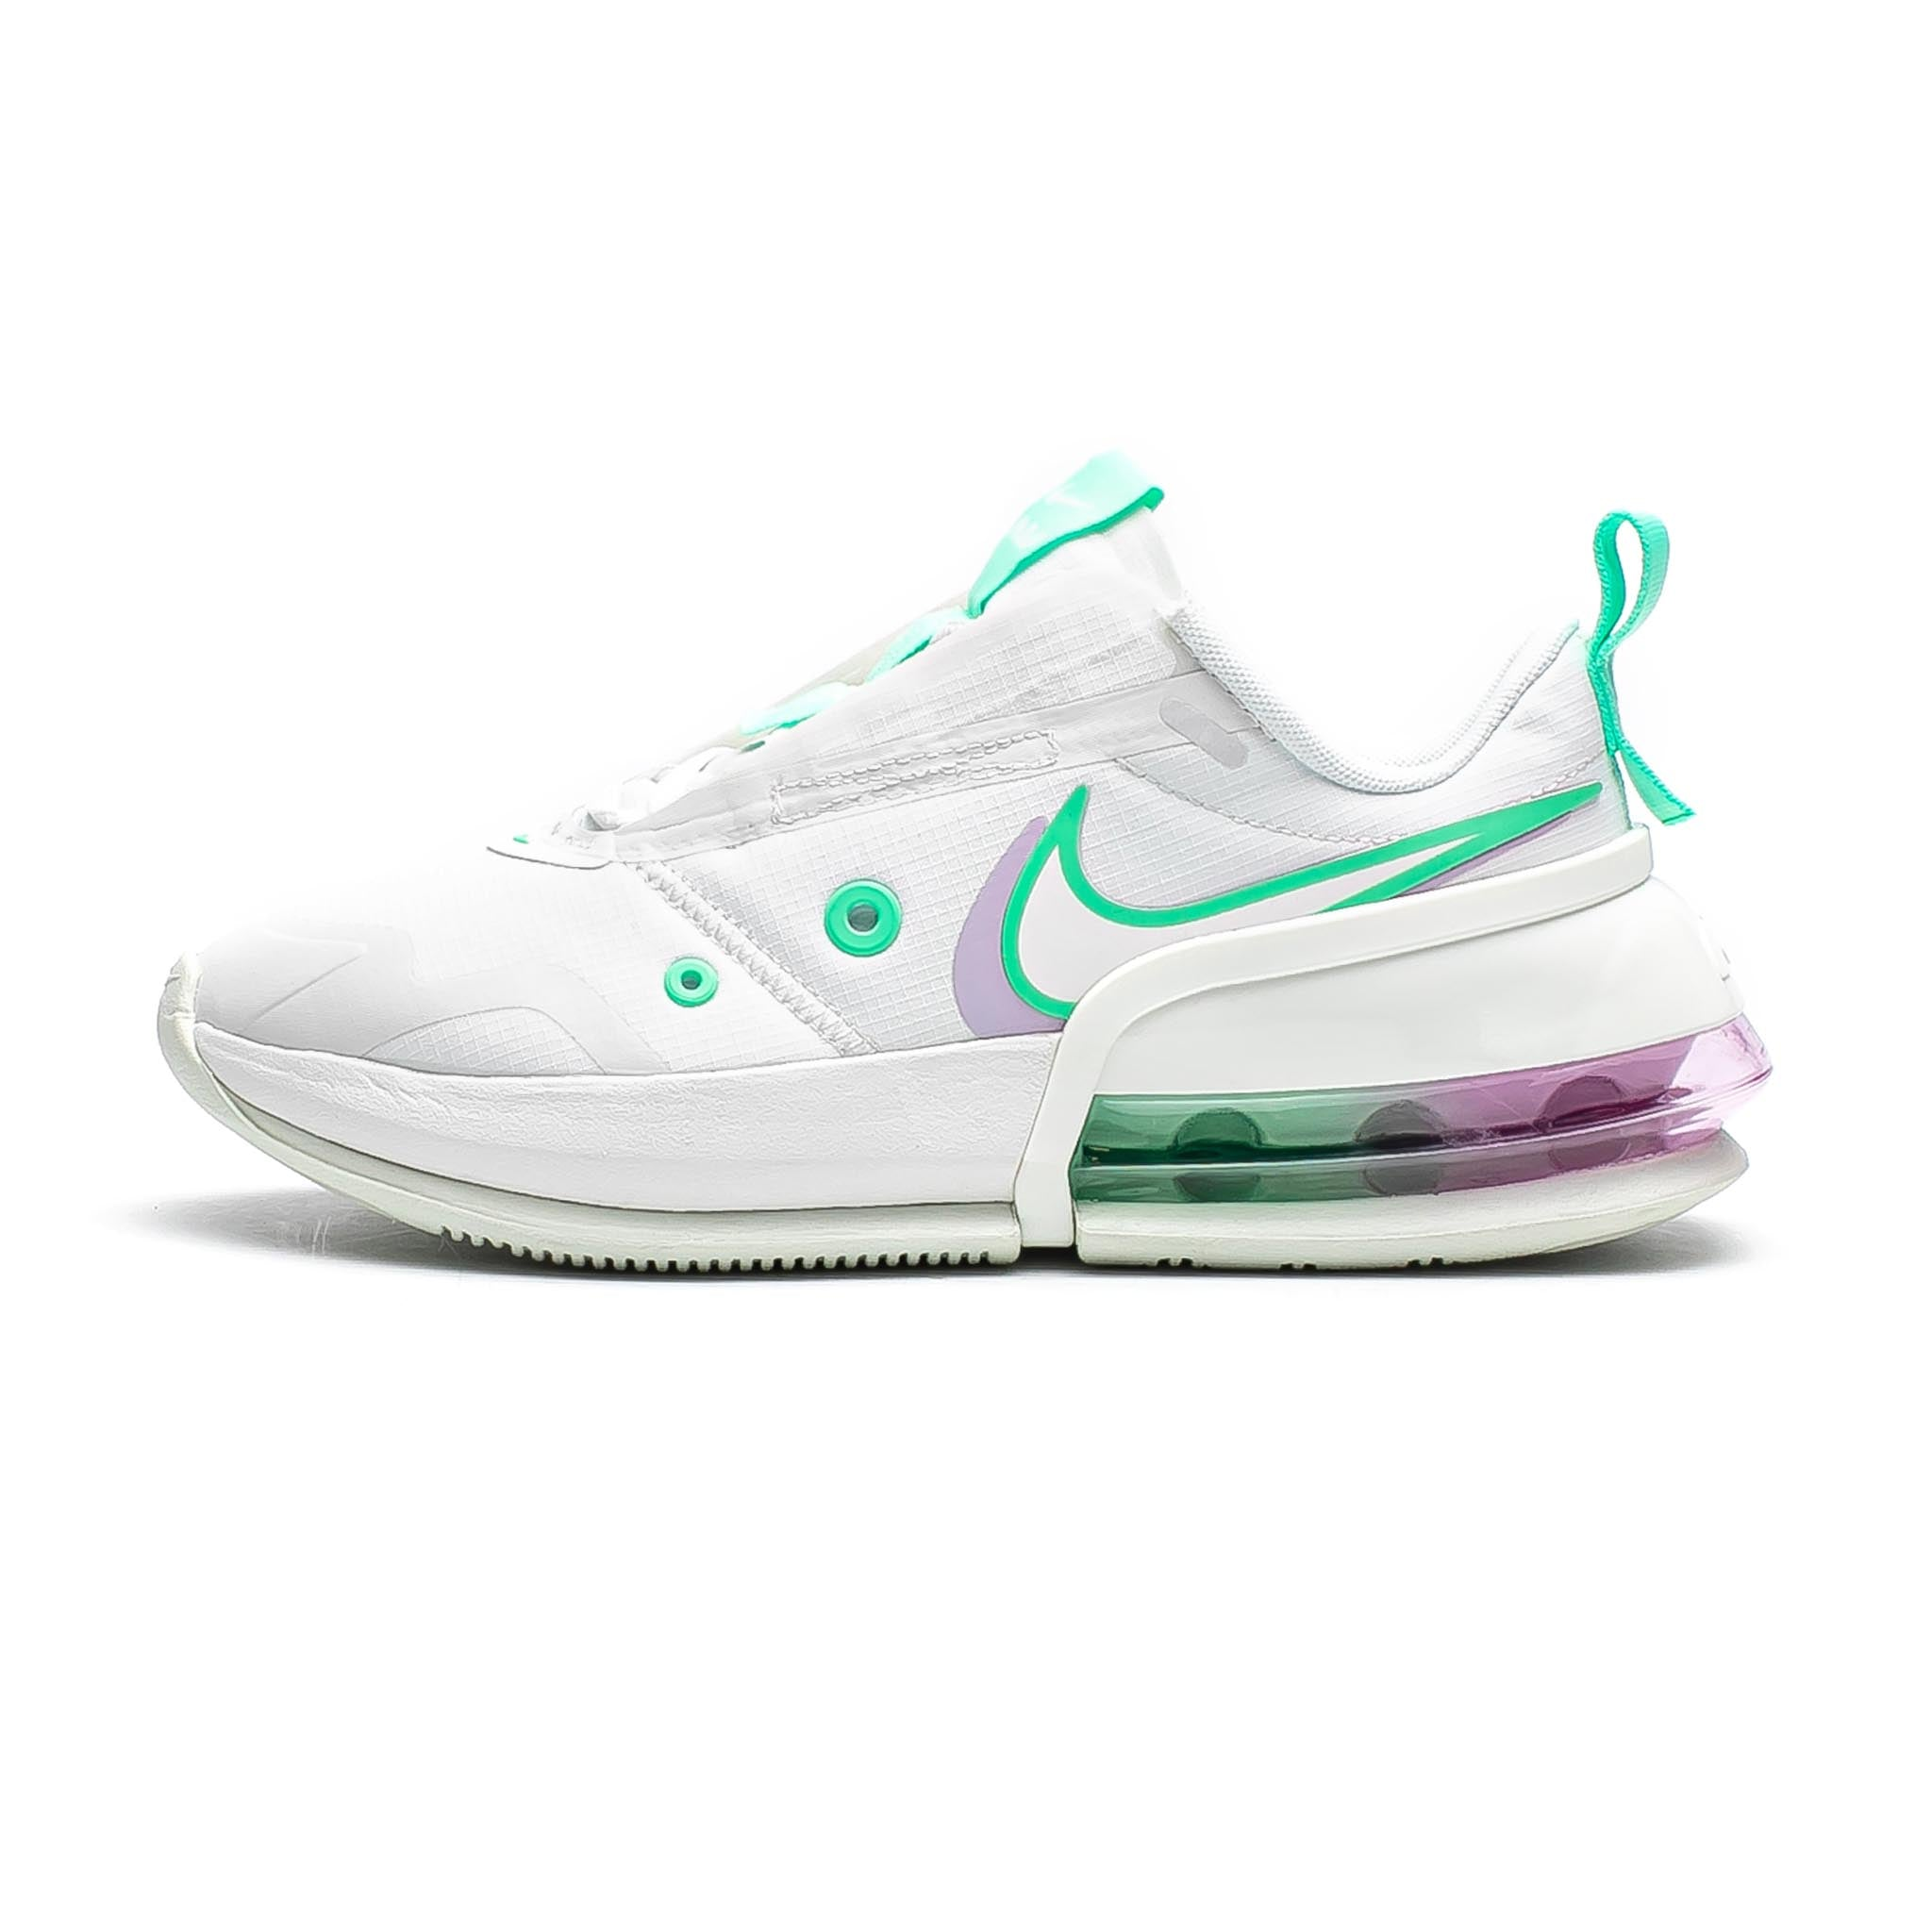 Nike Air Max Up 'Summit White/Green Glow'